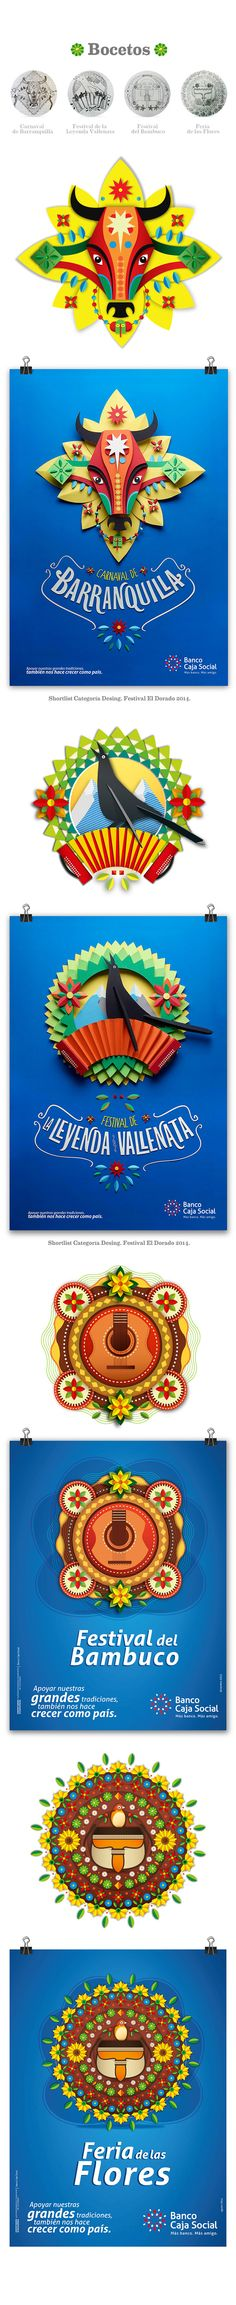 Fiestas y Ferias de Colombia BCS on Behance